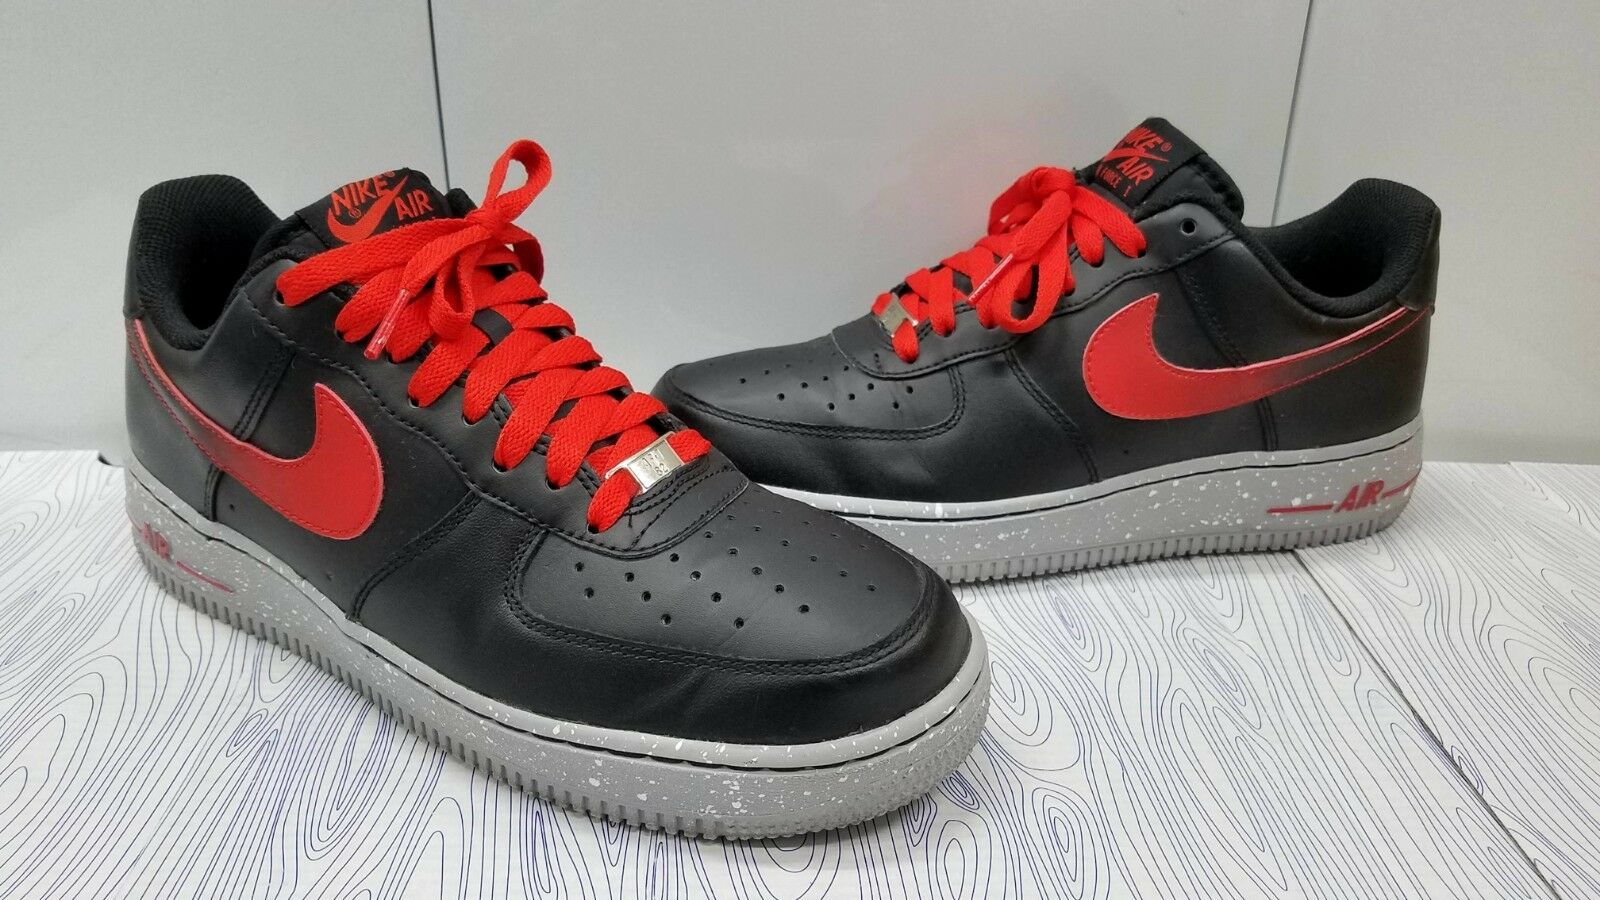 50df589d86 NIKE AIR FORCE ONE SIZE 8 CHALLENGE RED BLACK GREY 488298-070 2012 LOW MEN'S  ntifcr764-Athletic Shoes